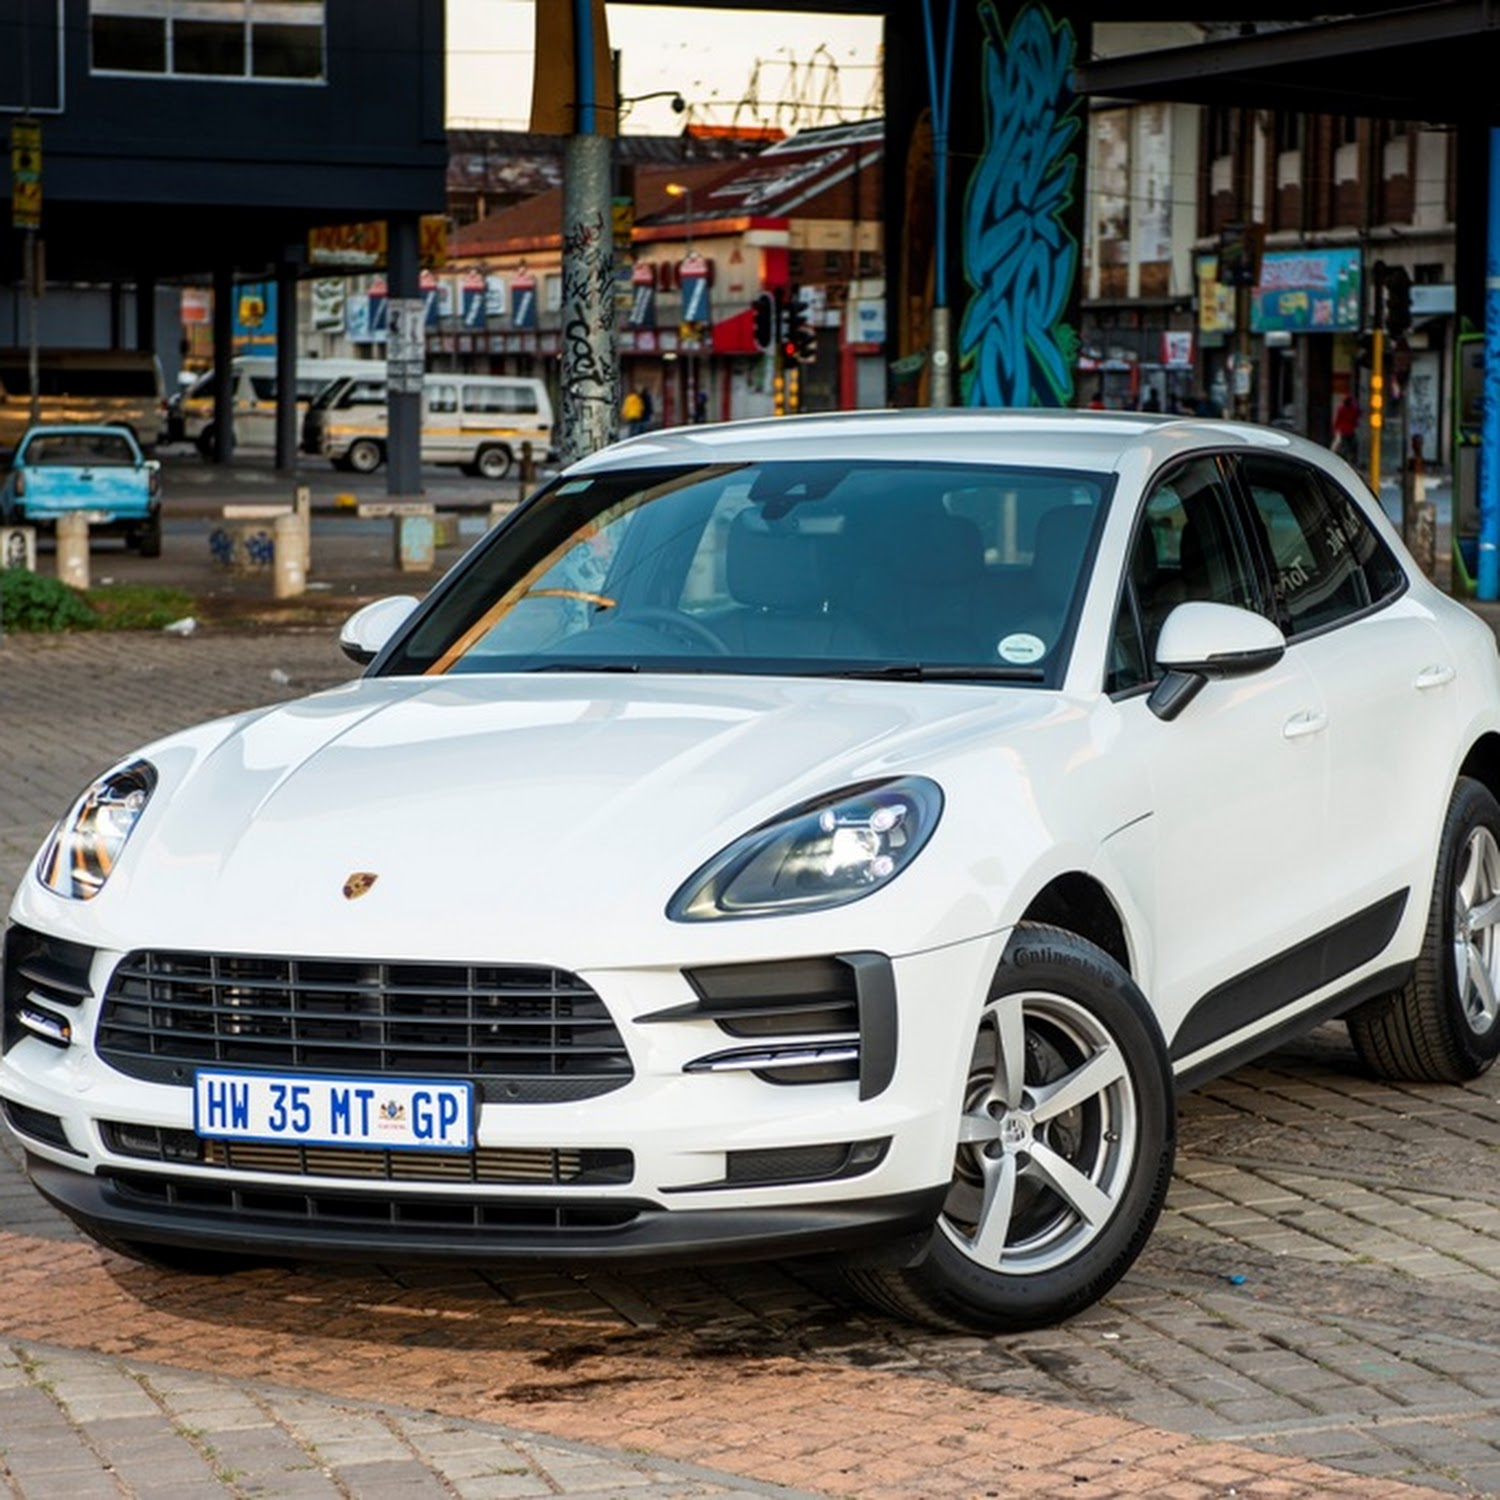 Review The 2019 Porsche Macan Is An Attractive And Attainable Prospect